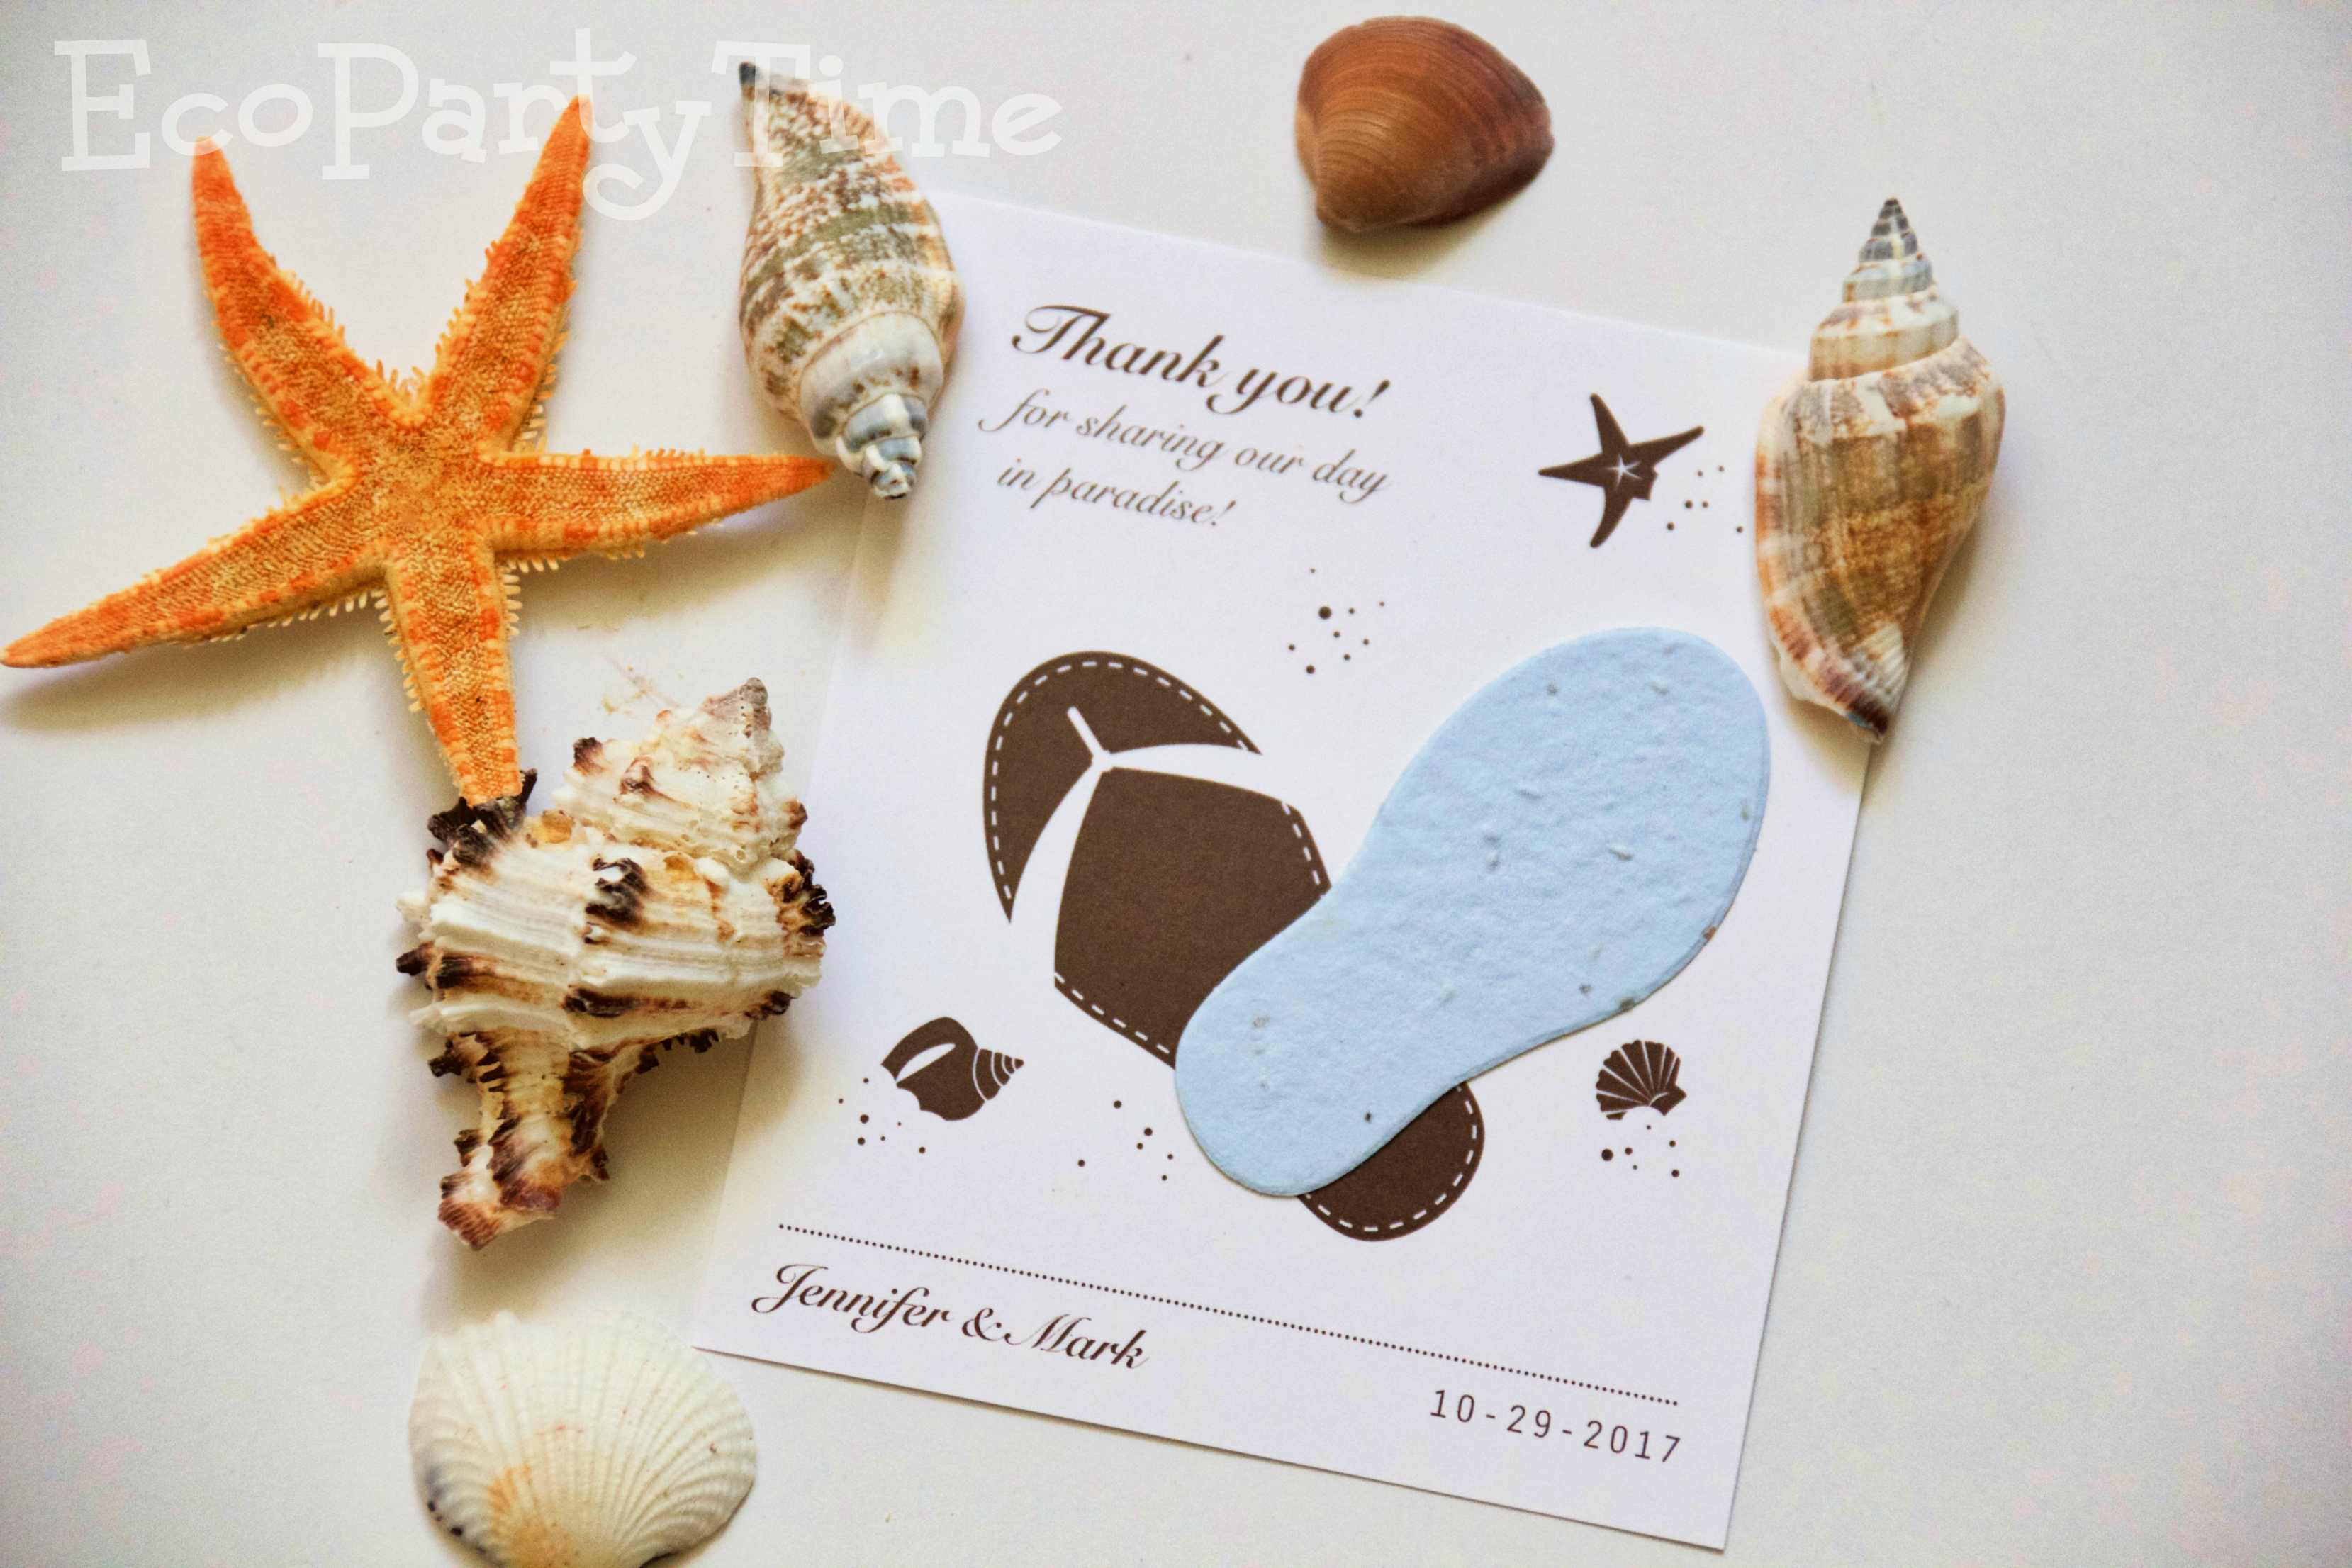 Ecopartytime: Eco Friendly Plantable Cards and Favors